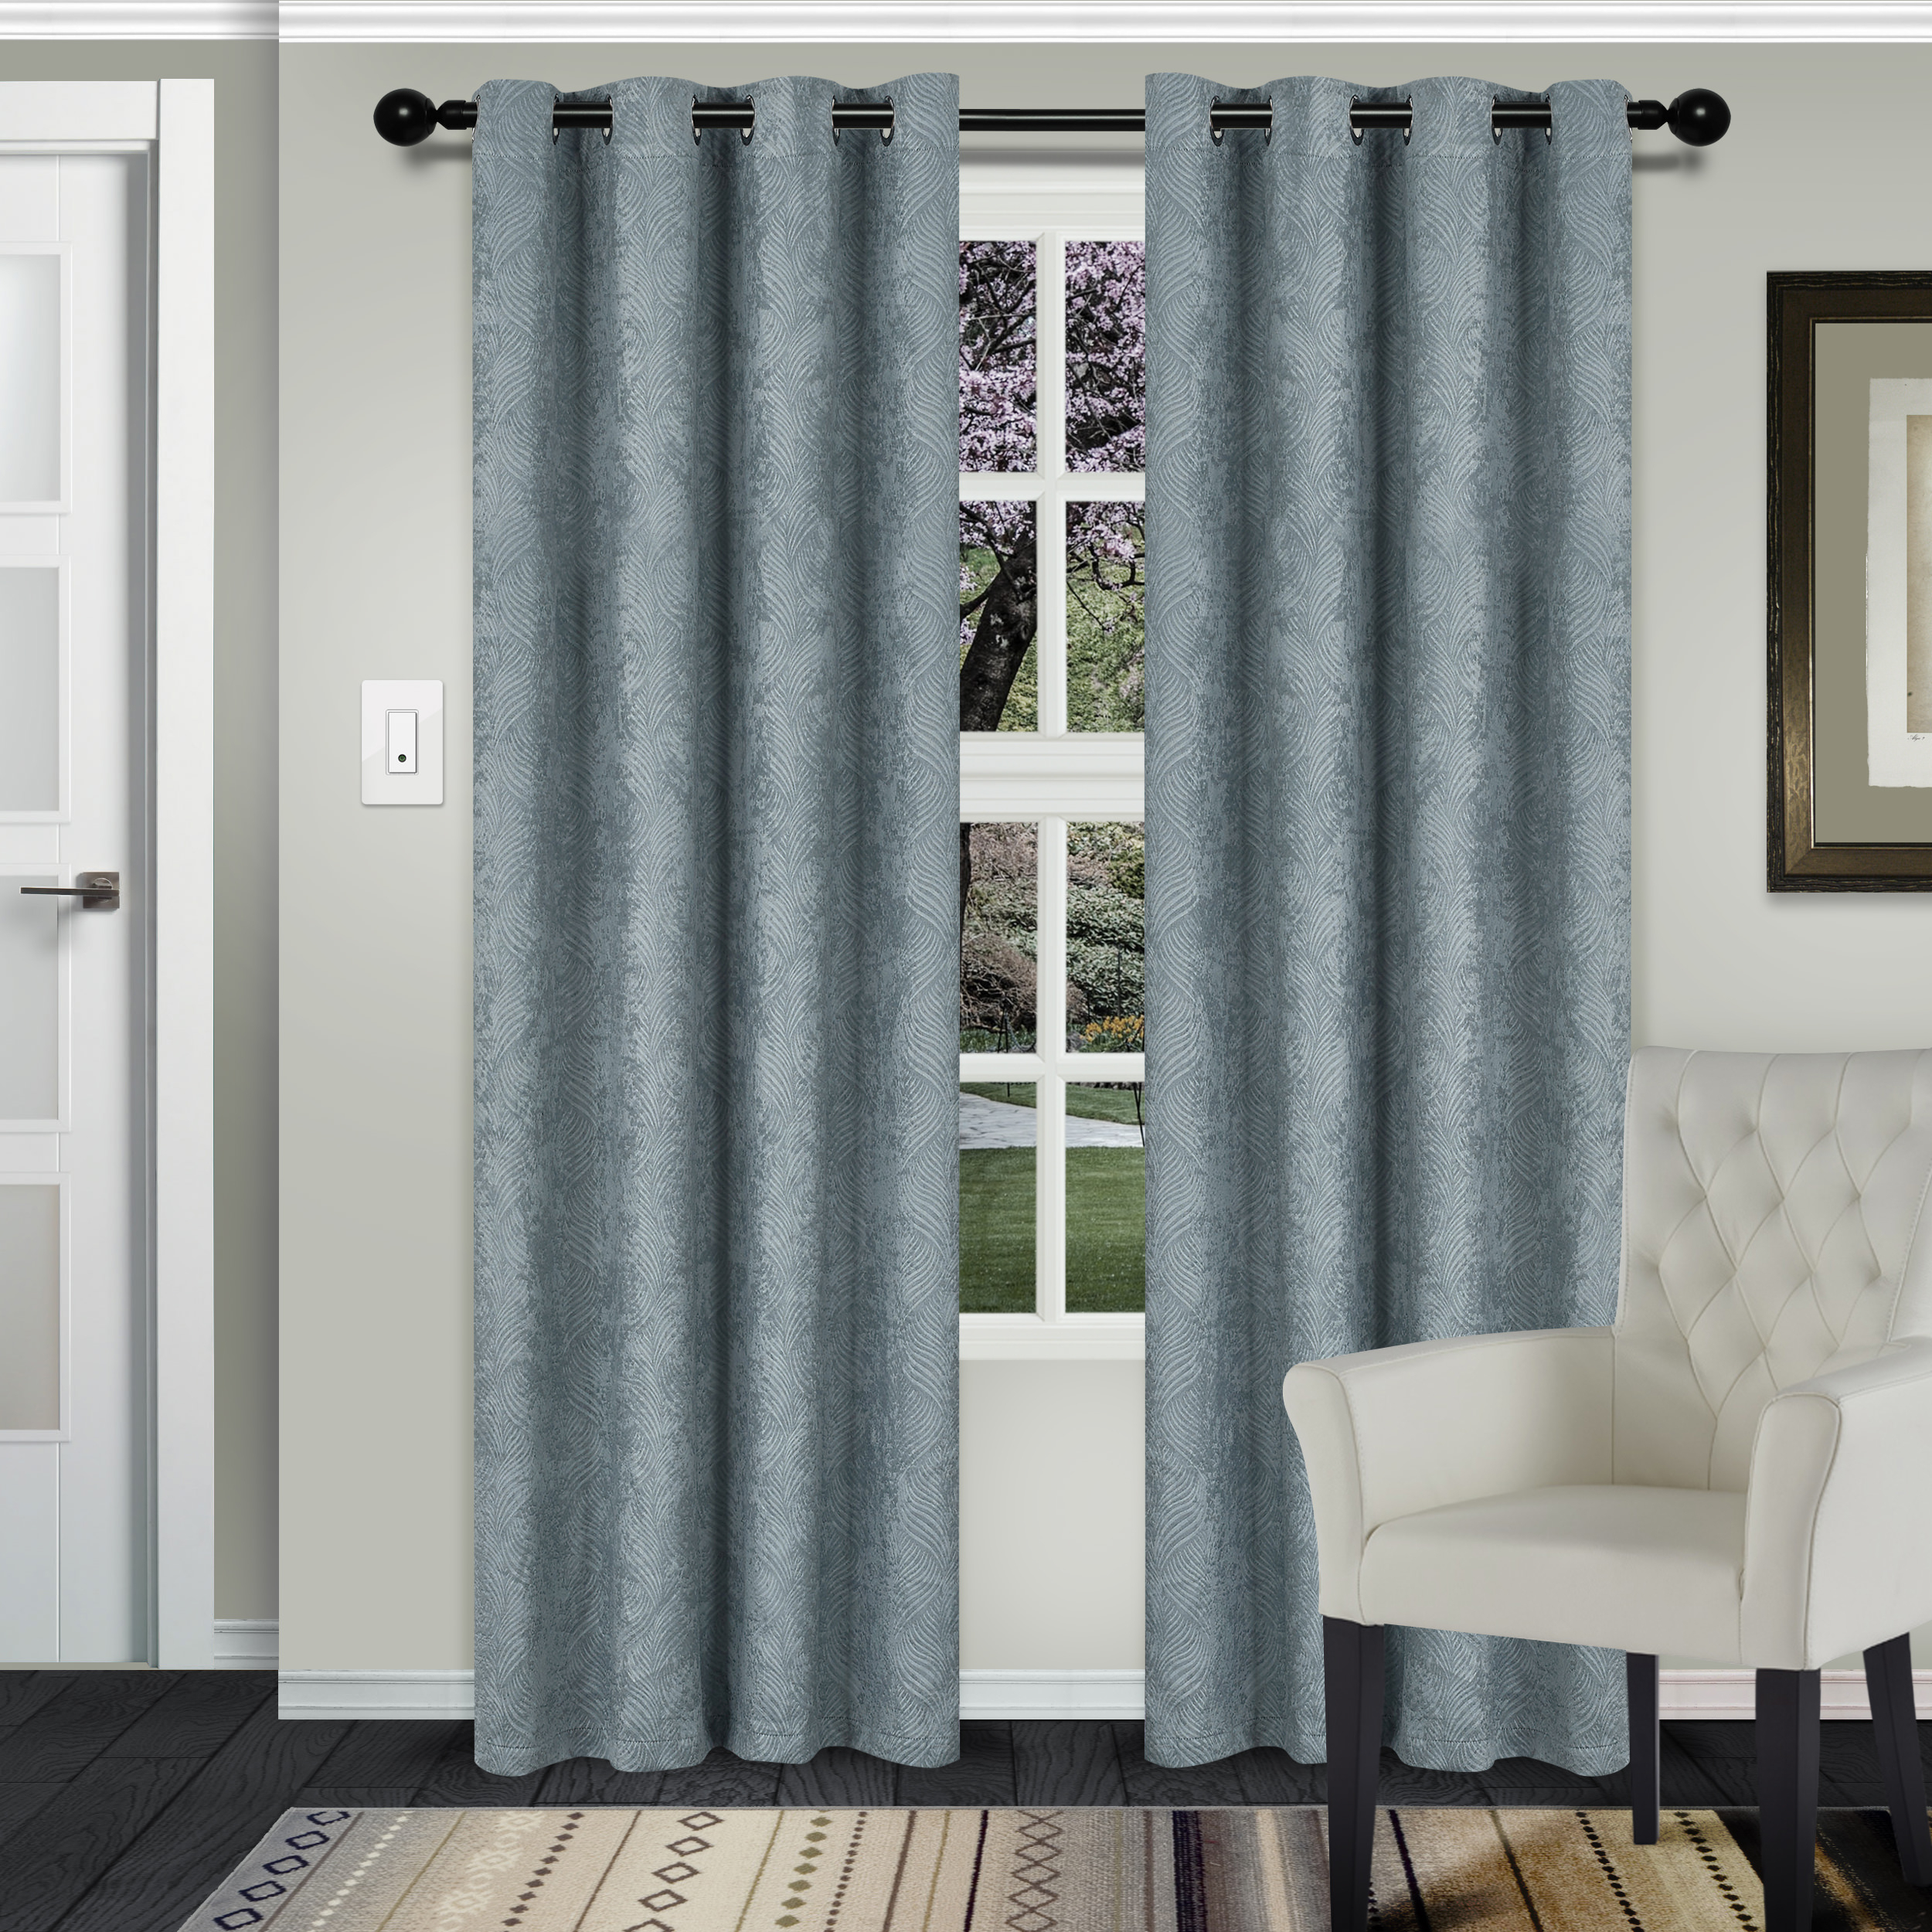 Superior Waverly Textured Blackout Curtain Set Of 2, Thermal With Regard To Superior Solid Insulated Thermal Blackout Grommet Curtain Panel Pairs (View 7 of 30)